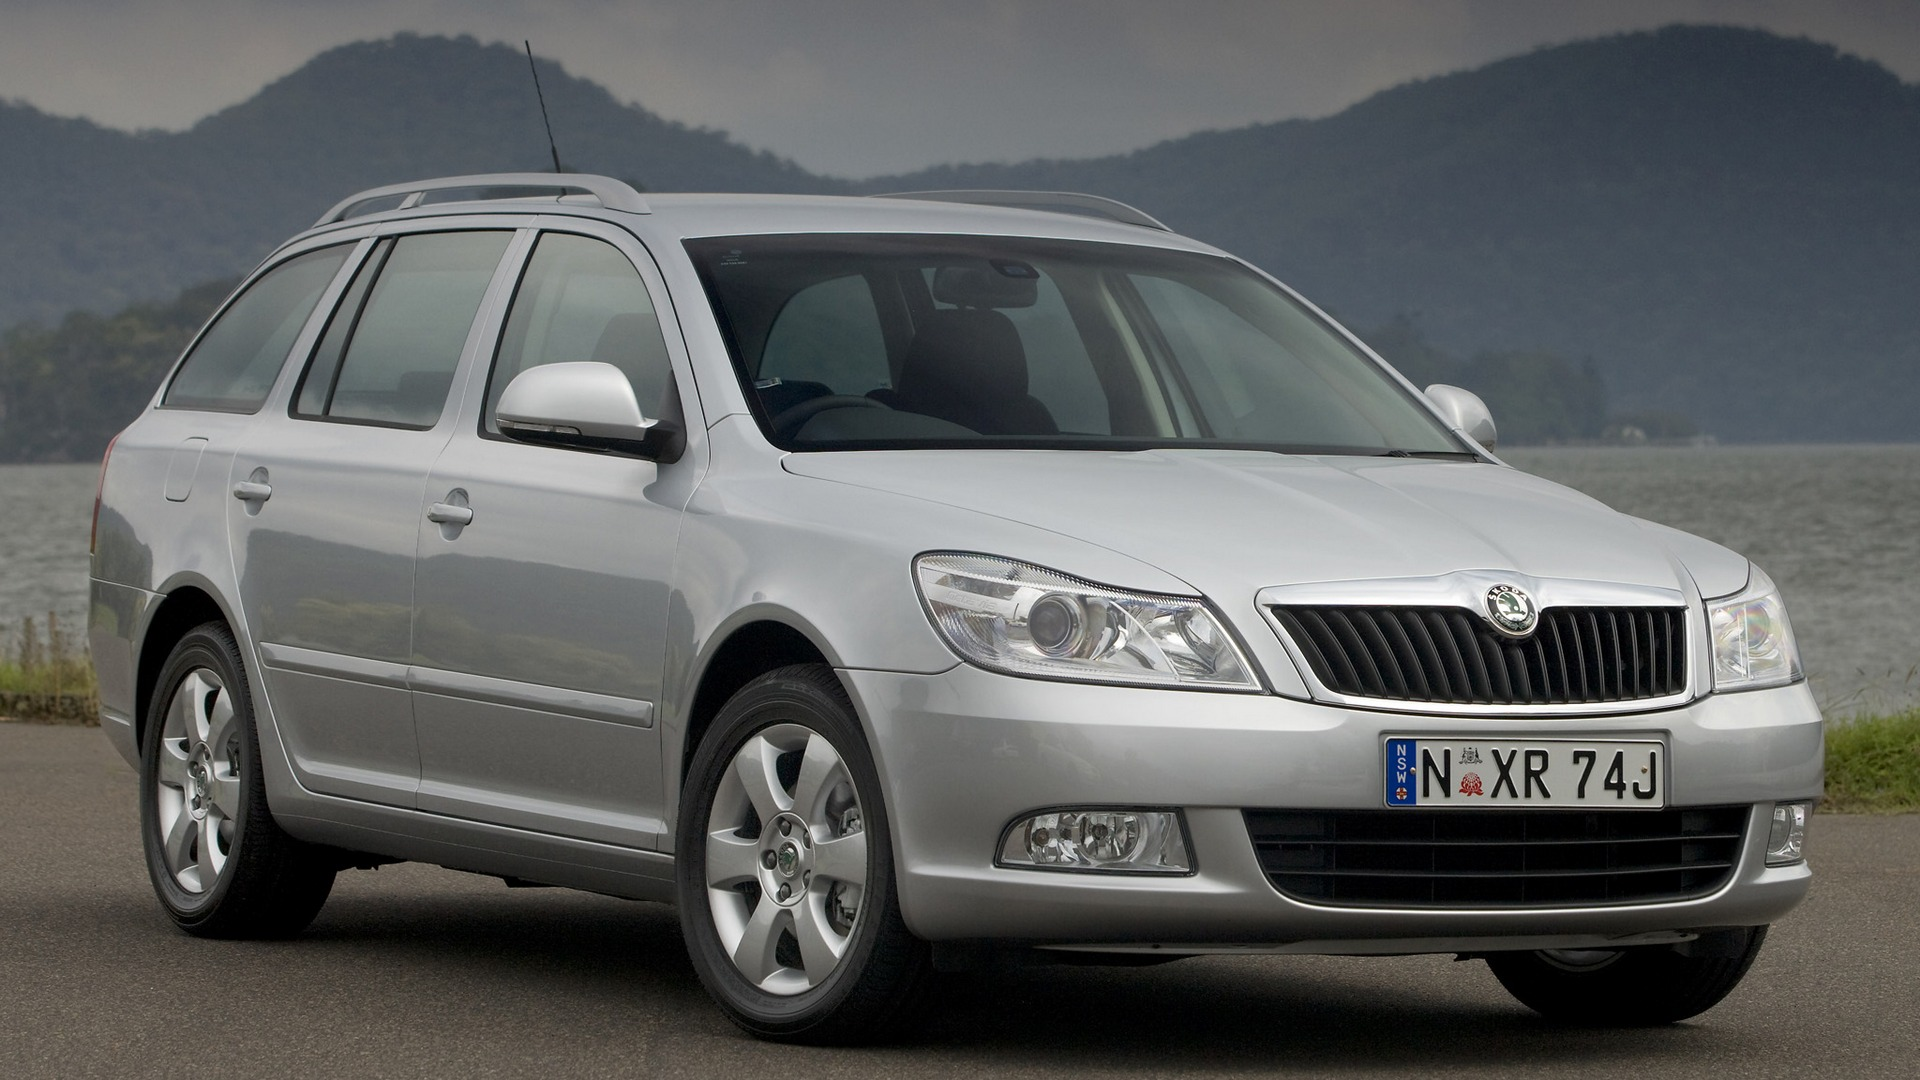 skoda octavia kombi 2013 test. Black Bedroom Furniture Sets. Home Design Ideas